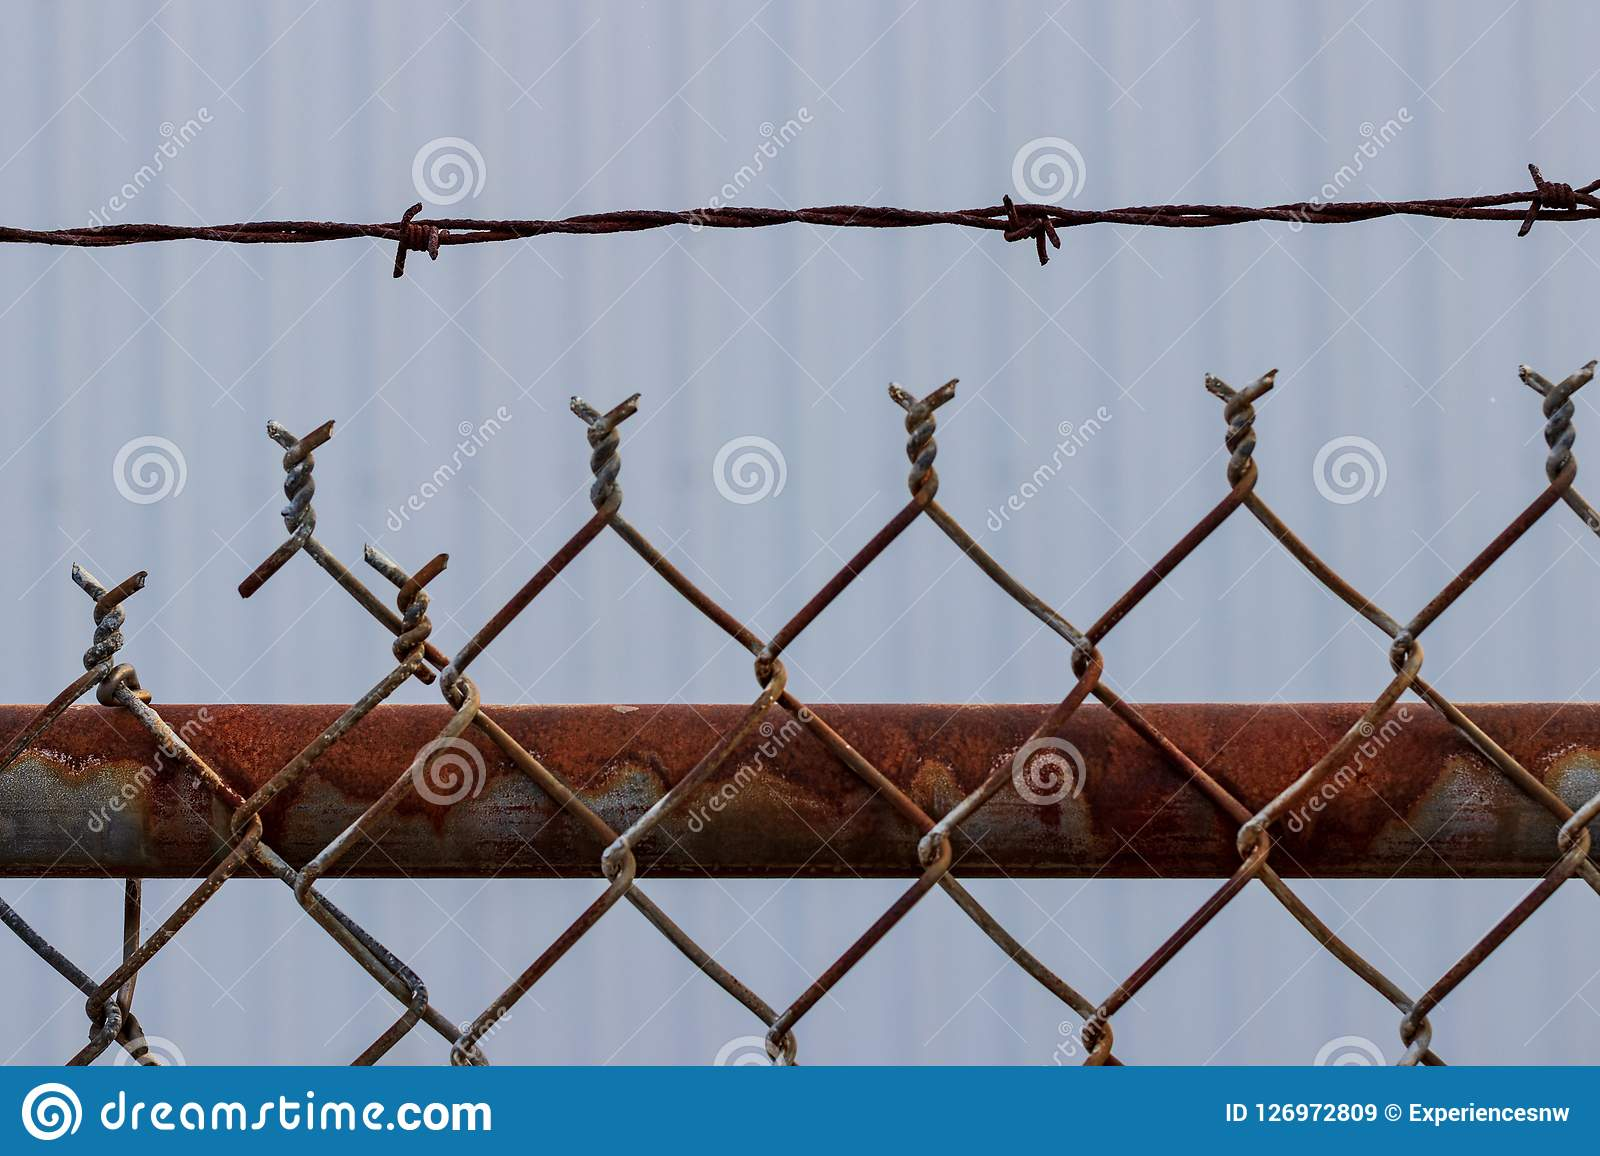 Image Of Rusty Chain Link Fence